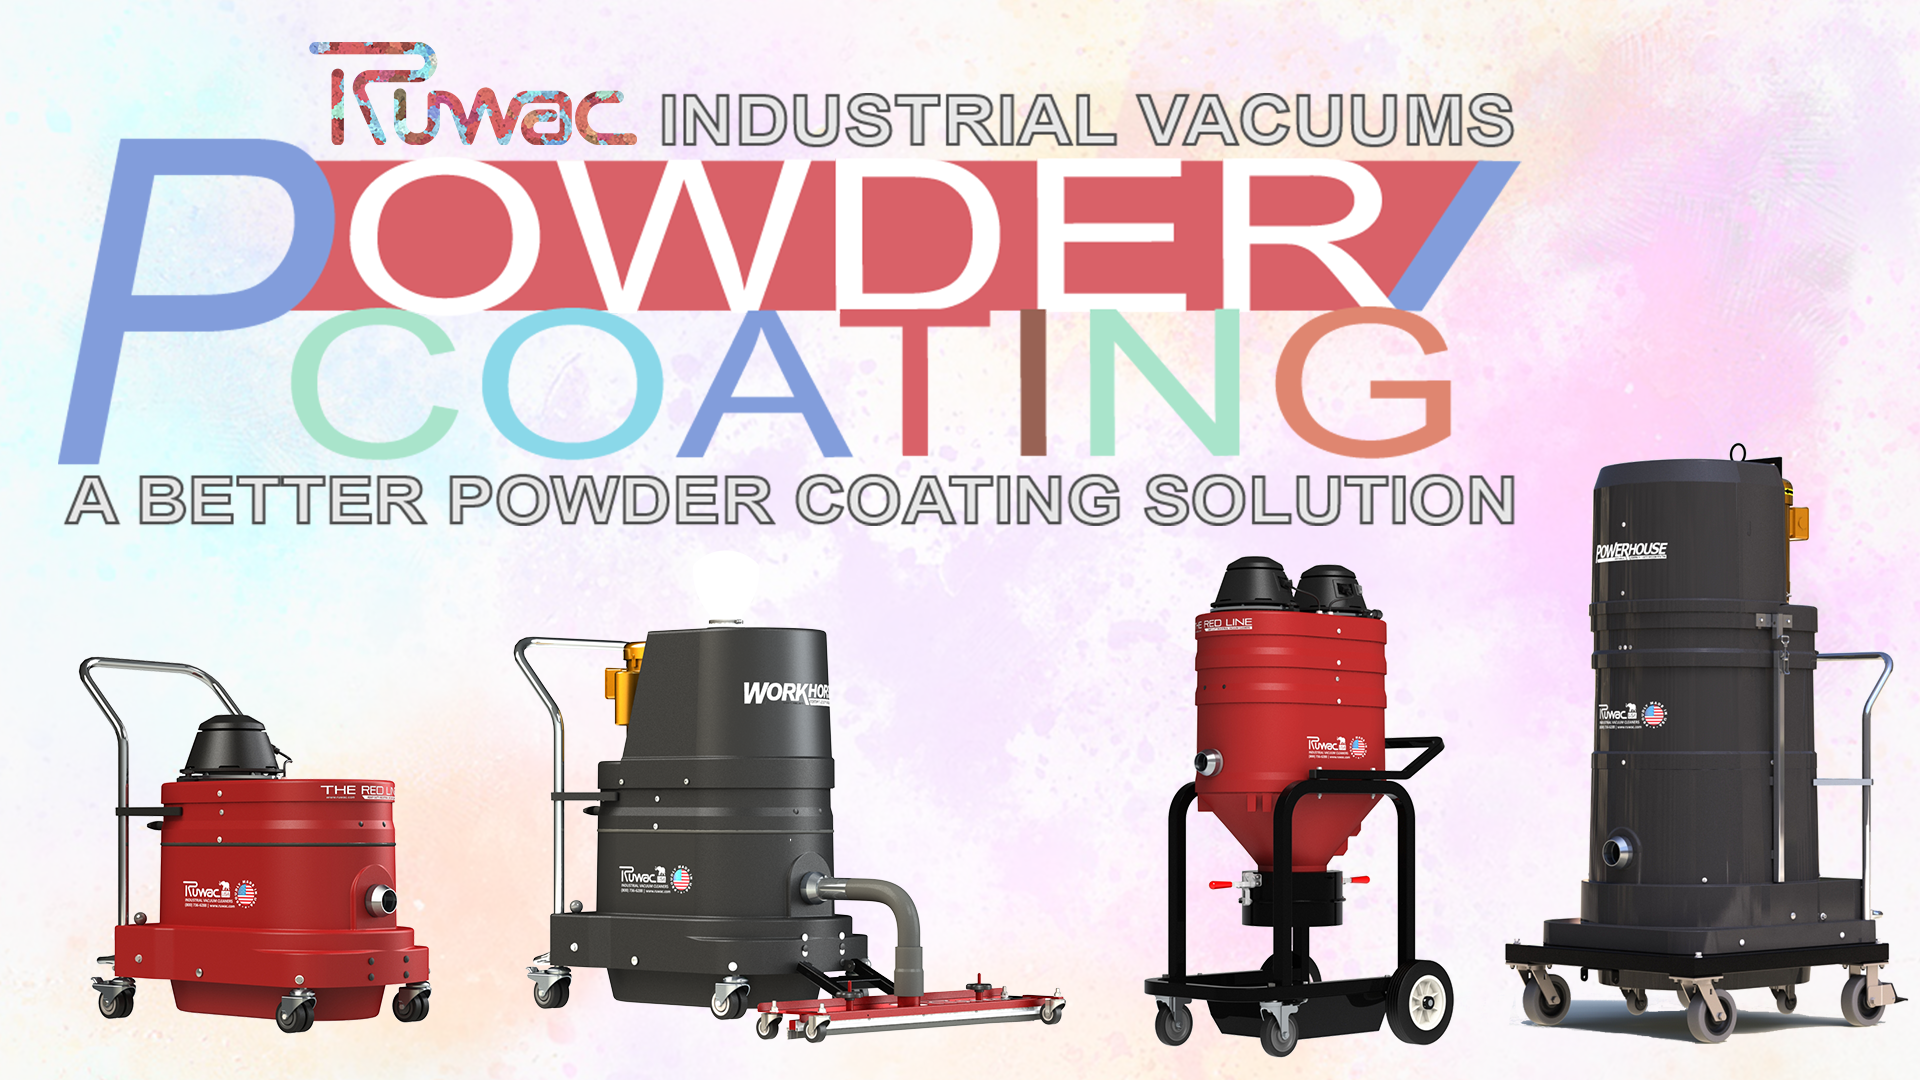 Powder Coating Vacuums Industrial Vacuums Ruwac Usa